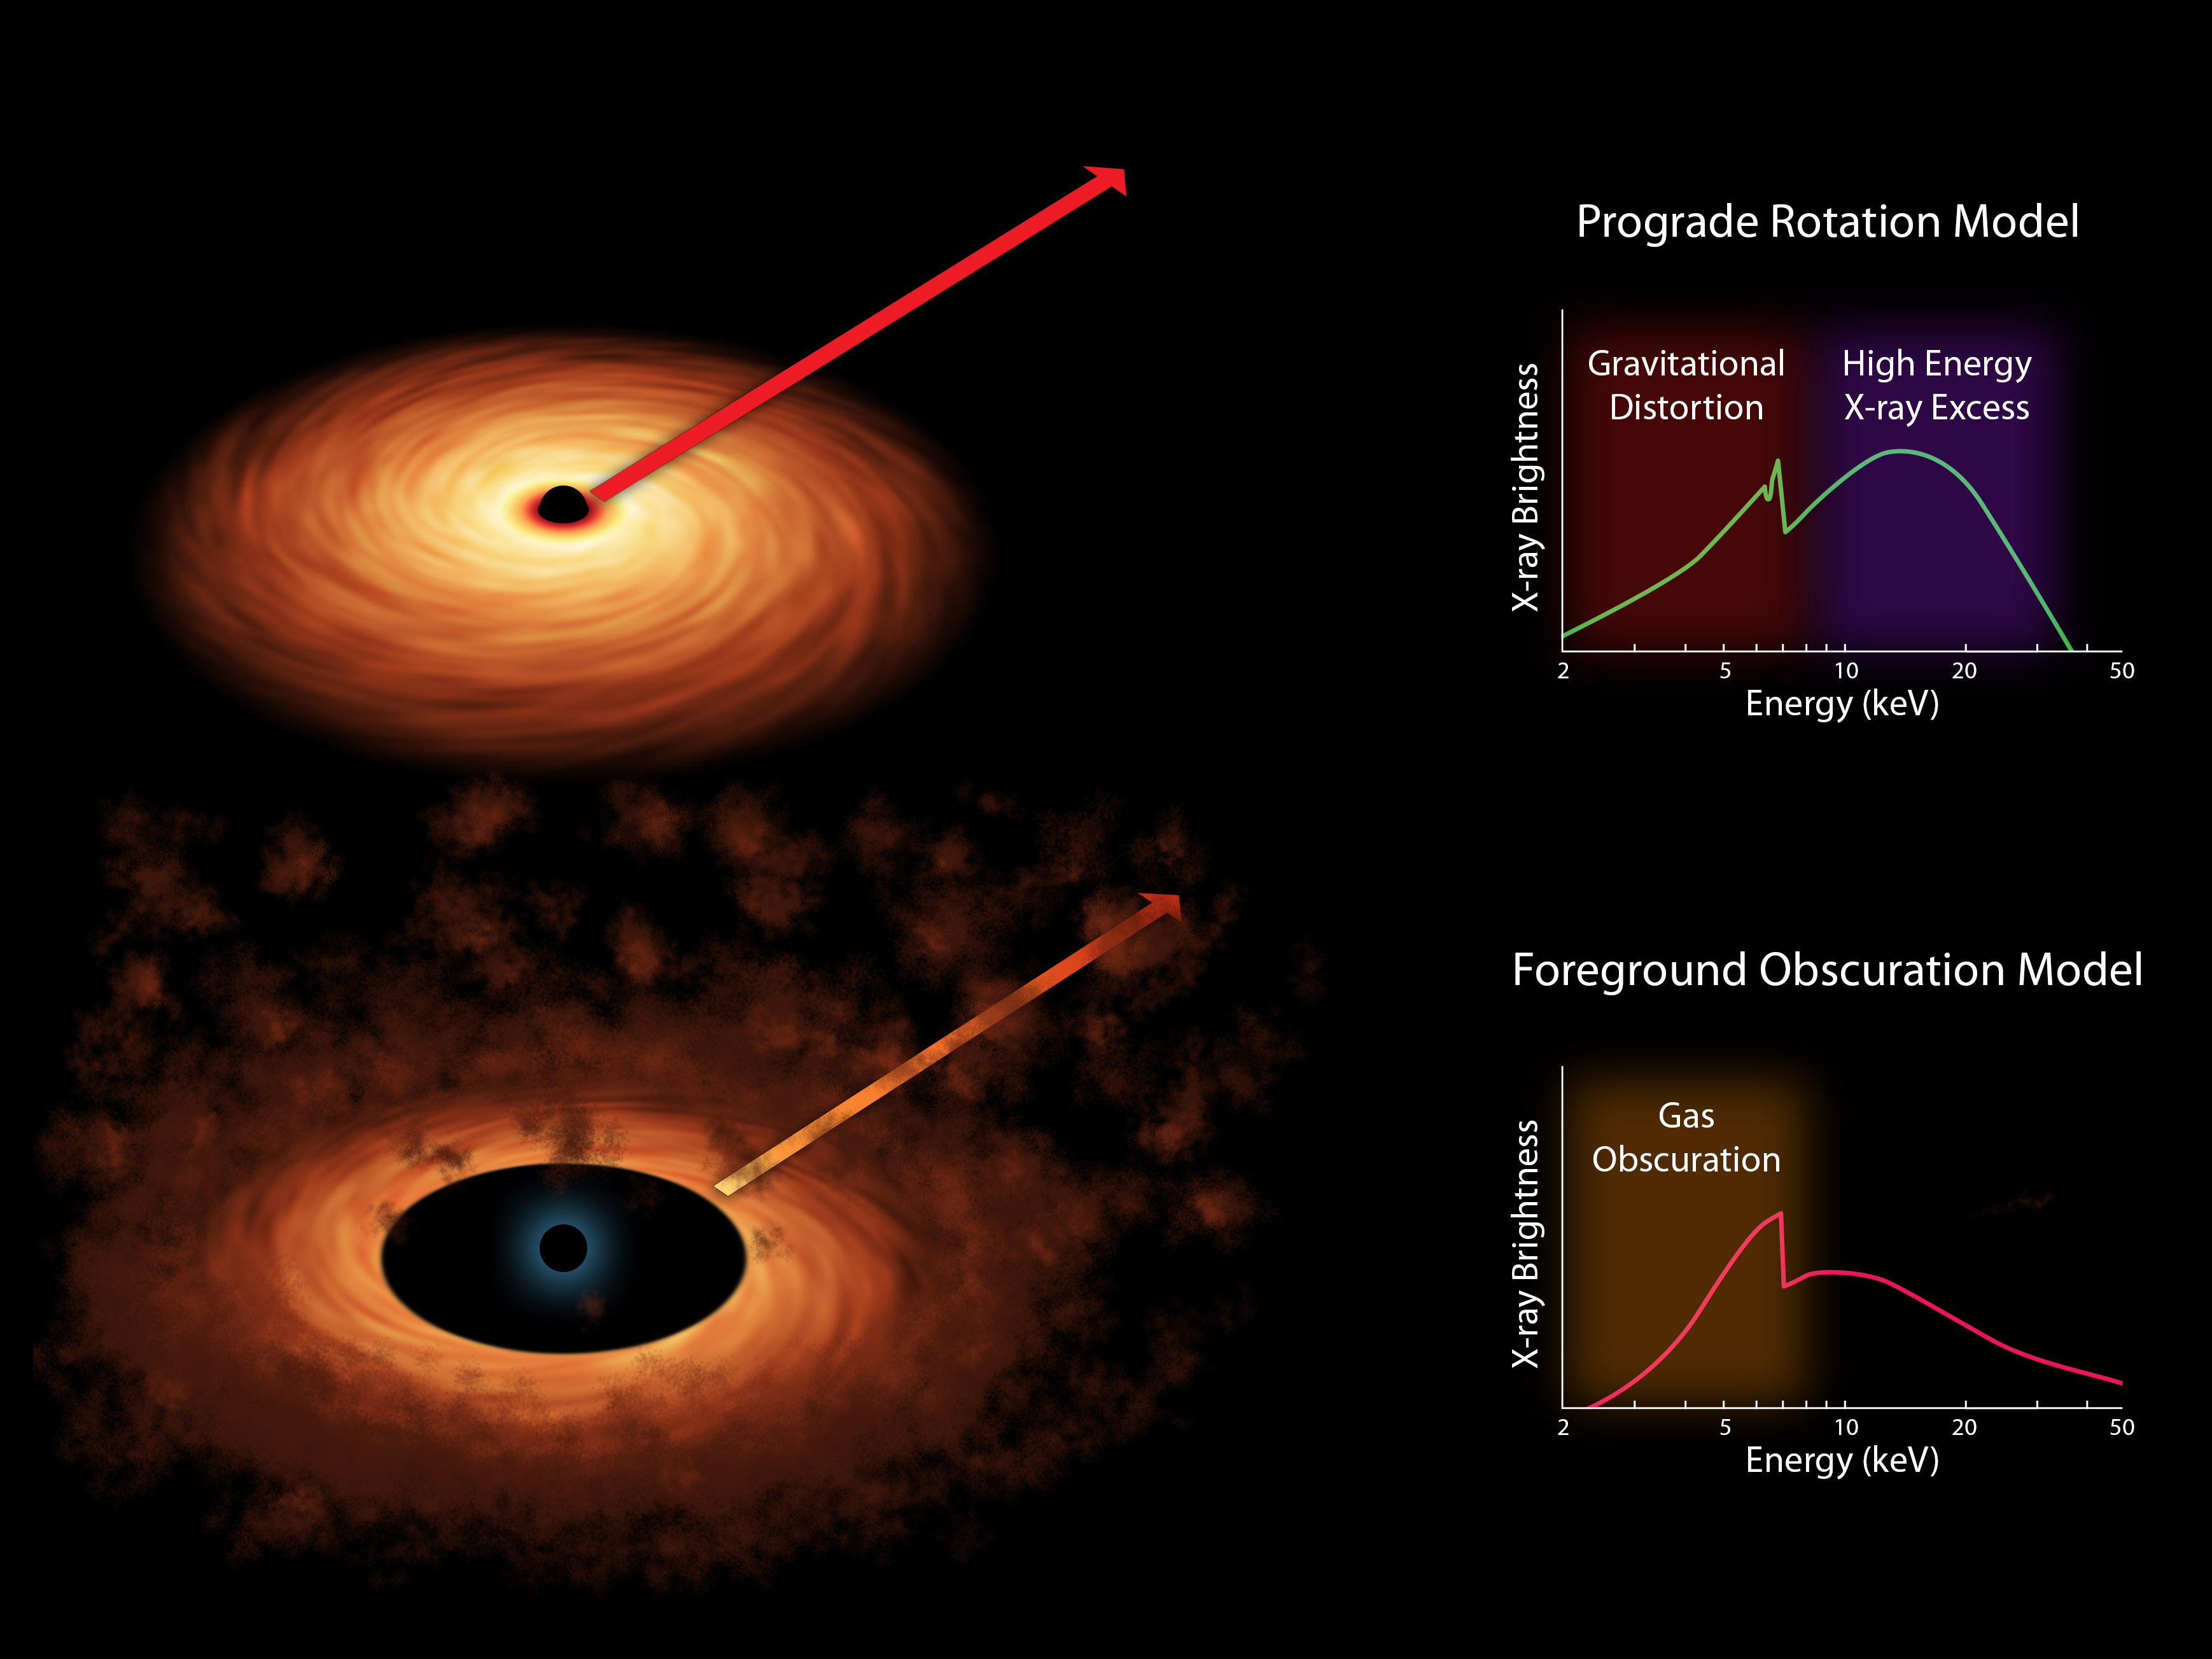 Two models of black hole spin